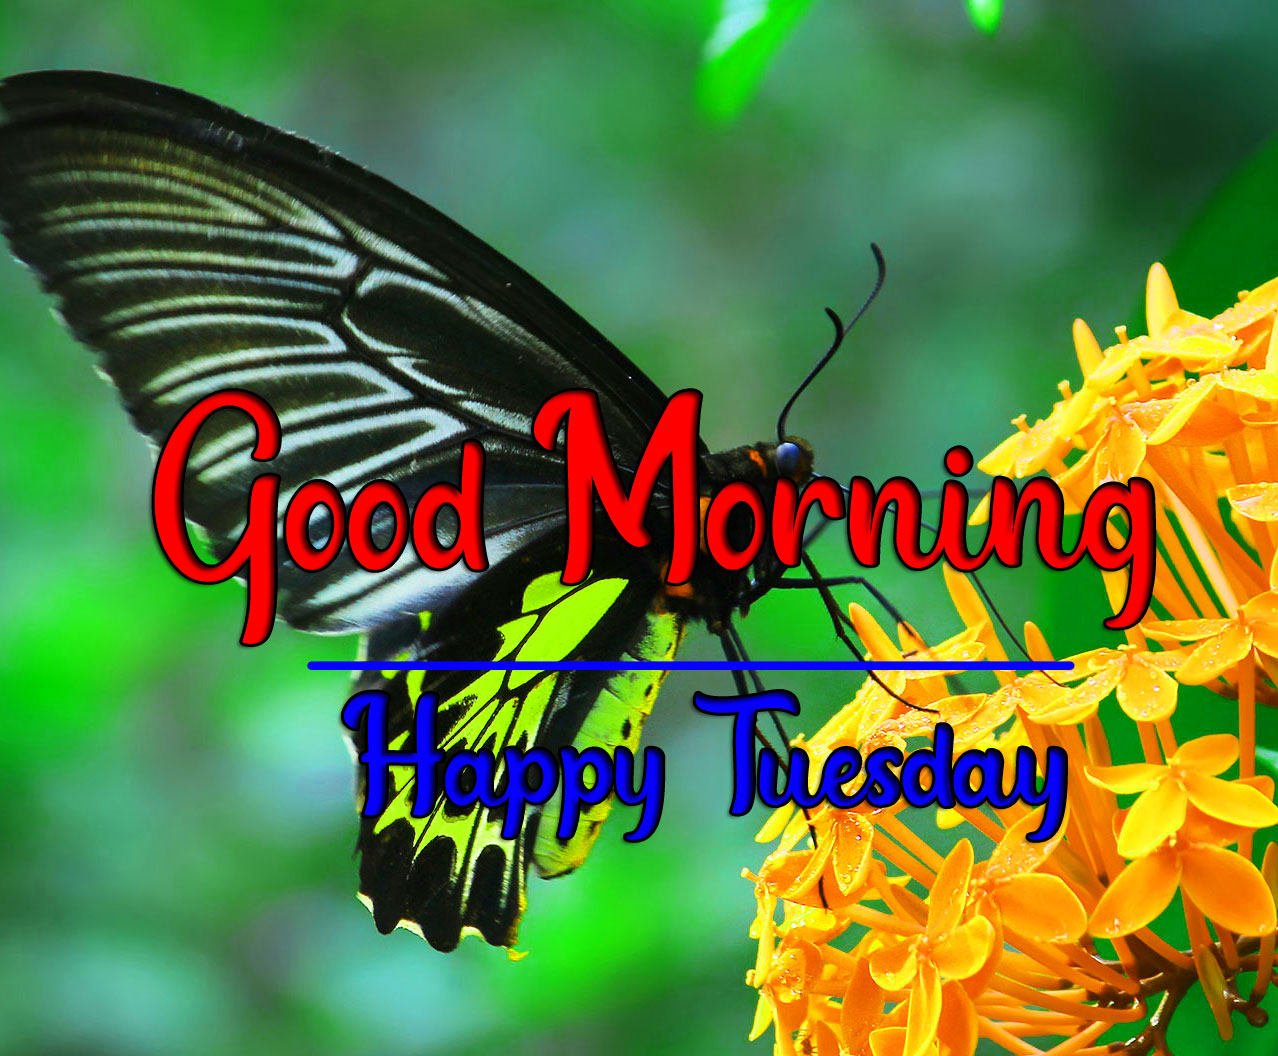 Tuesday Good morning Pics HD With Butterfly